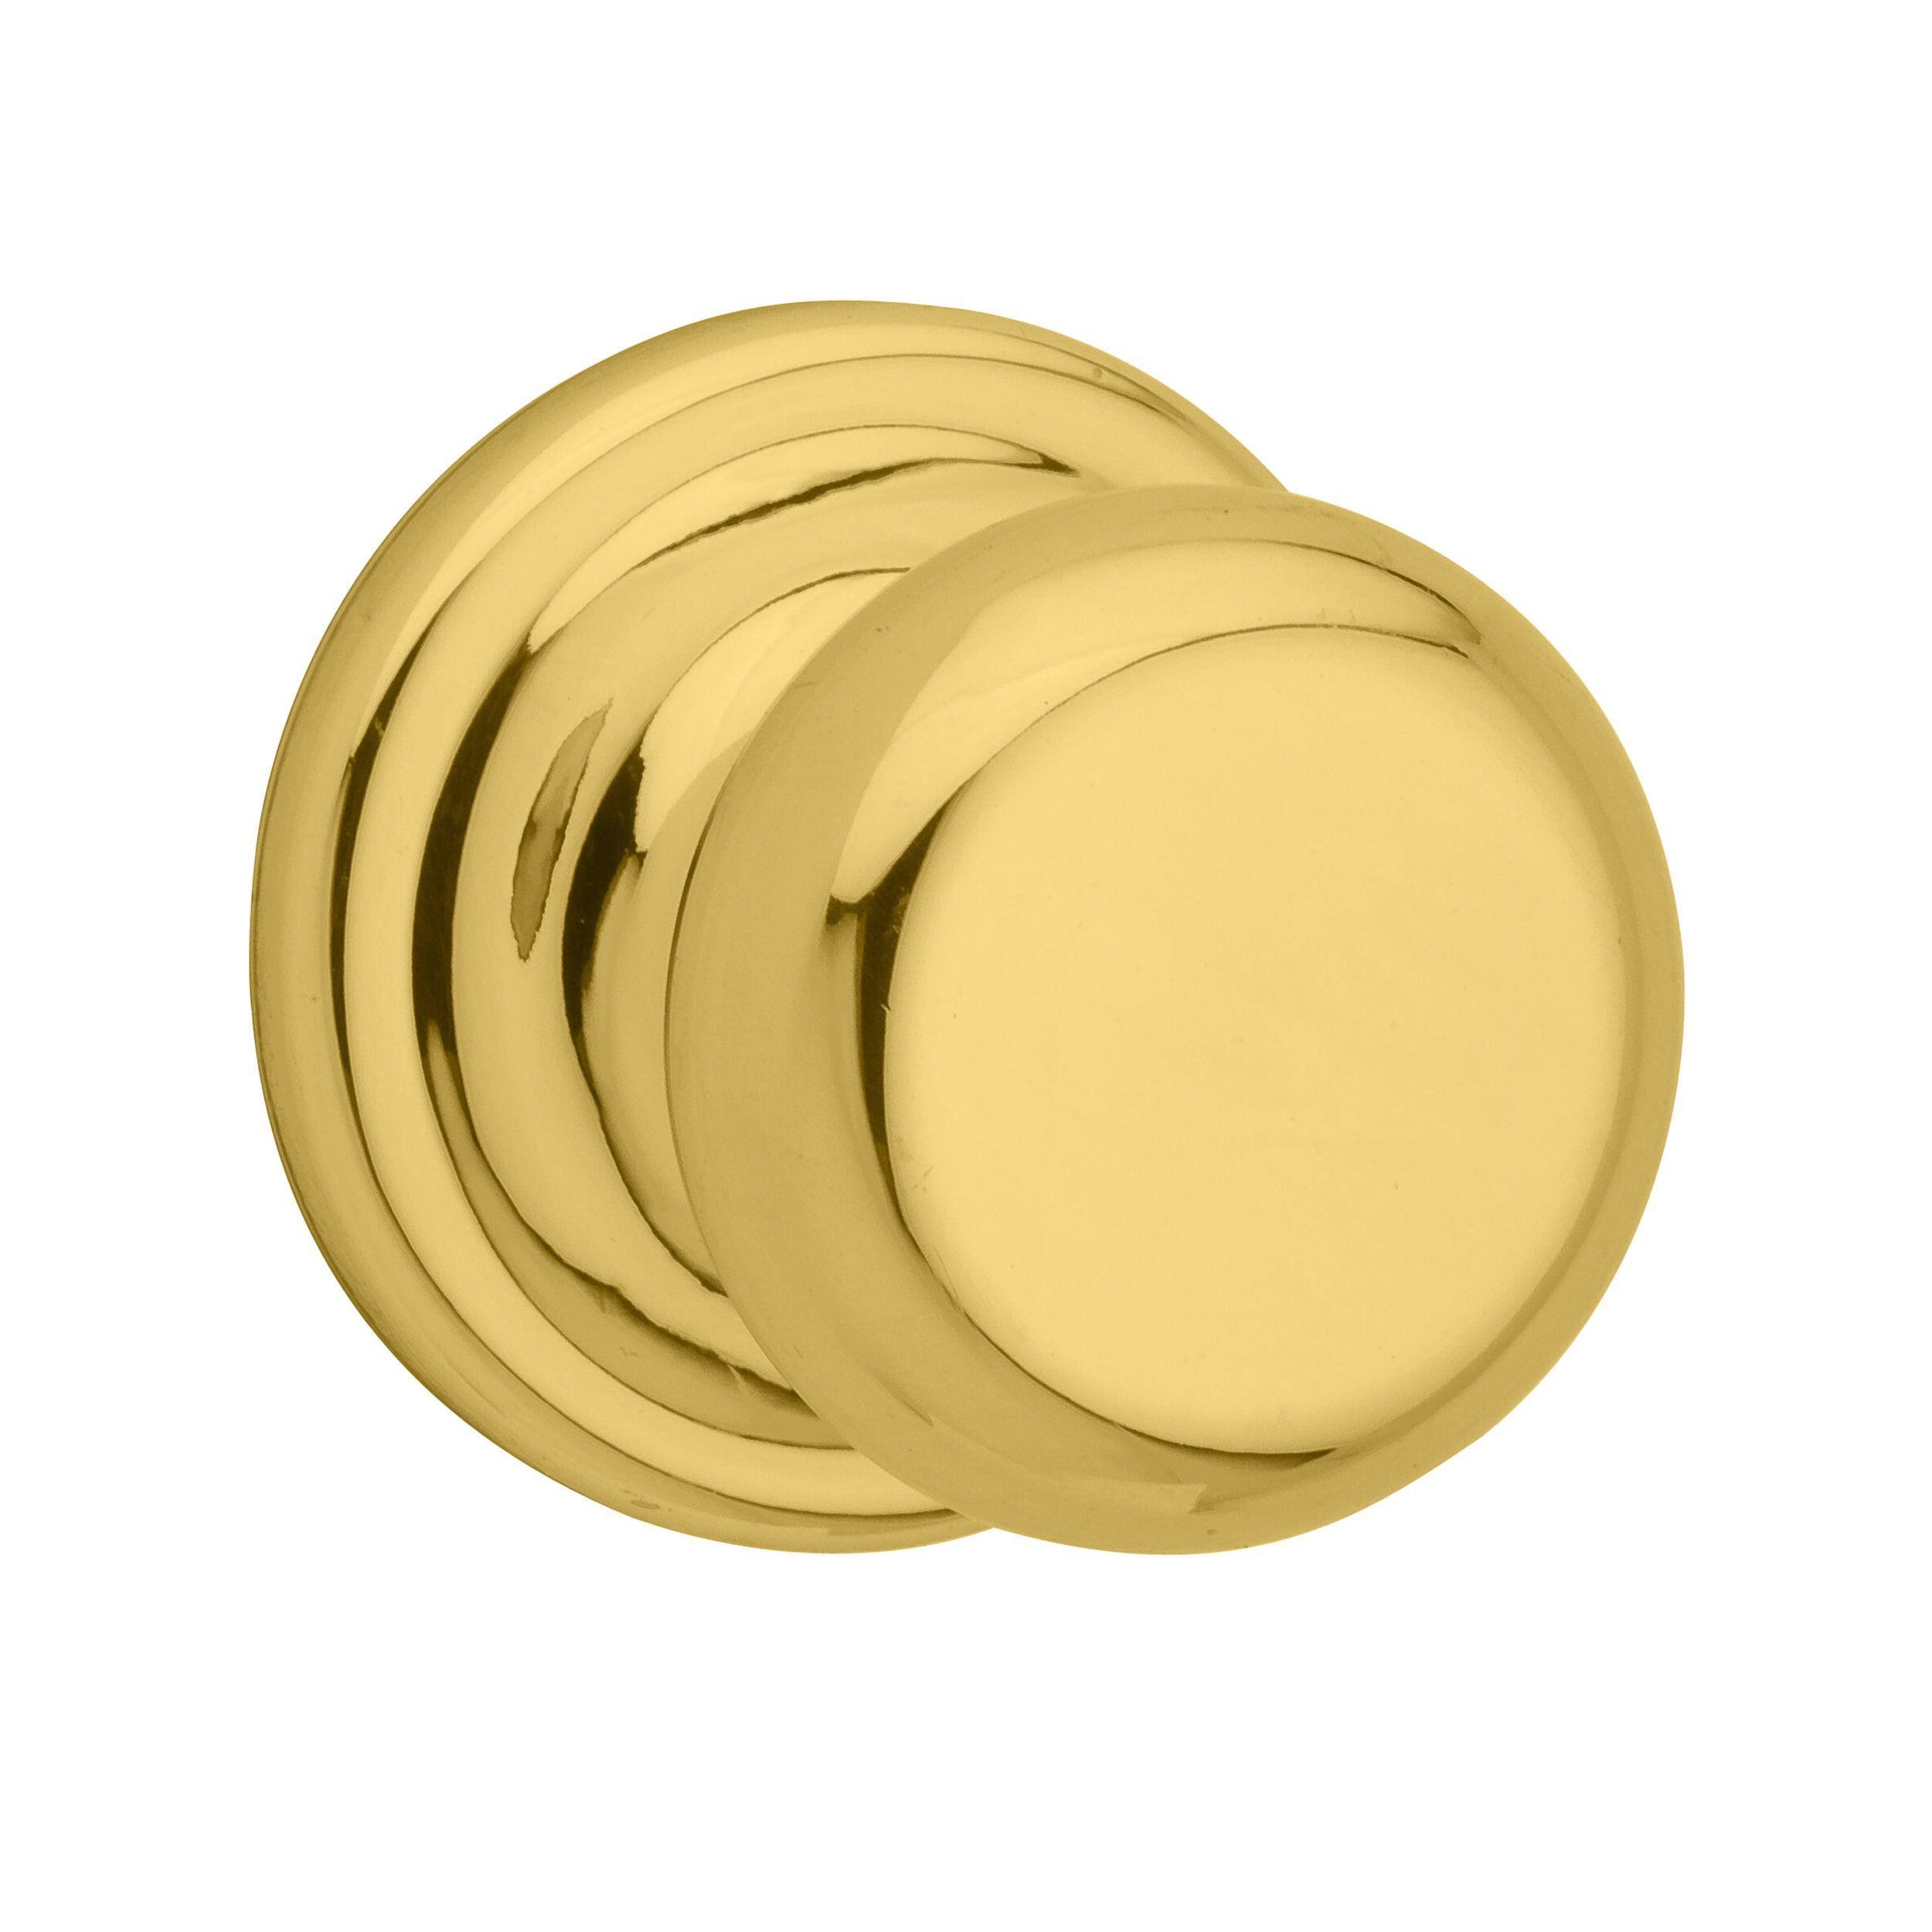 Kwikset 720J 3 CP Polished Brass Juno Passage Knob